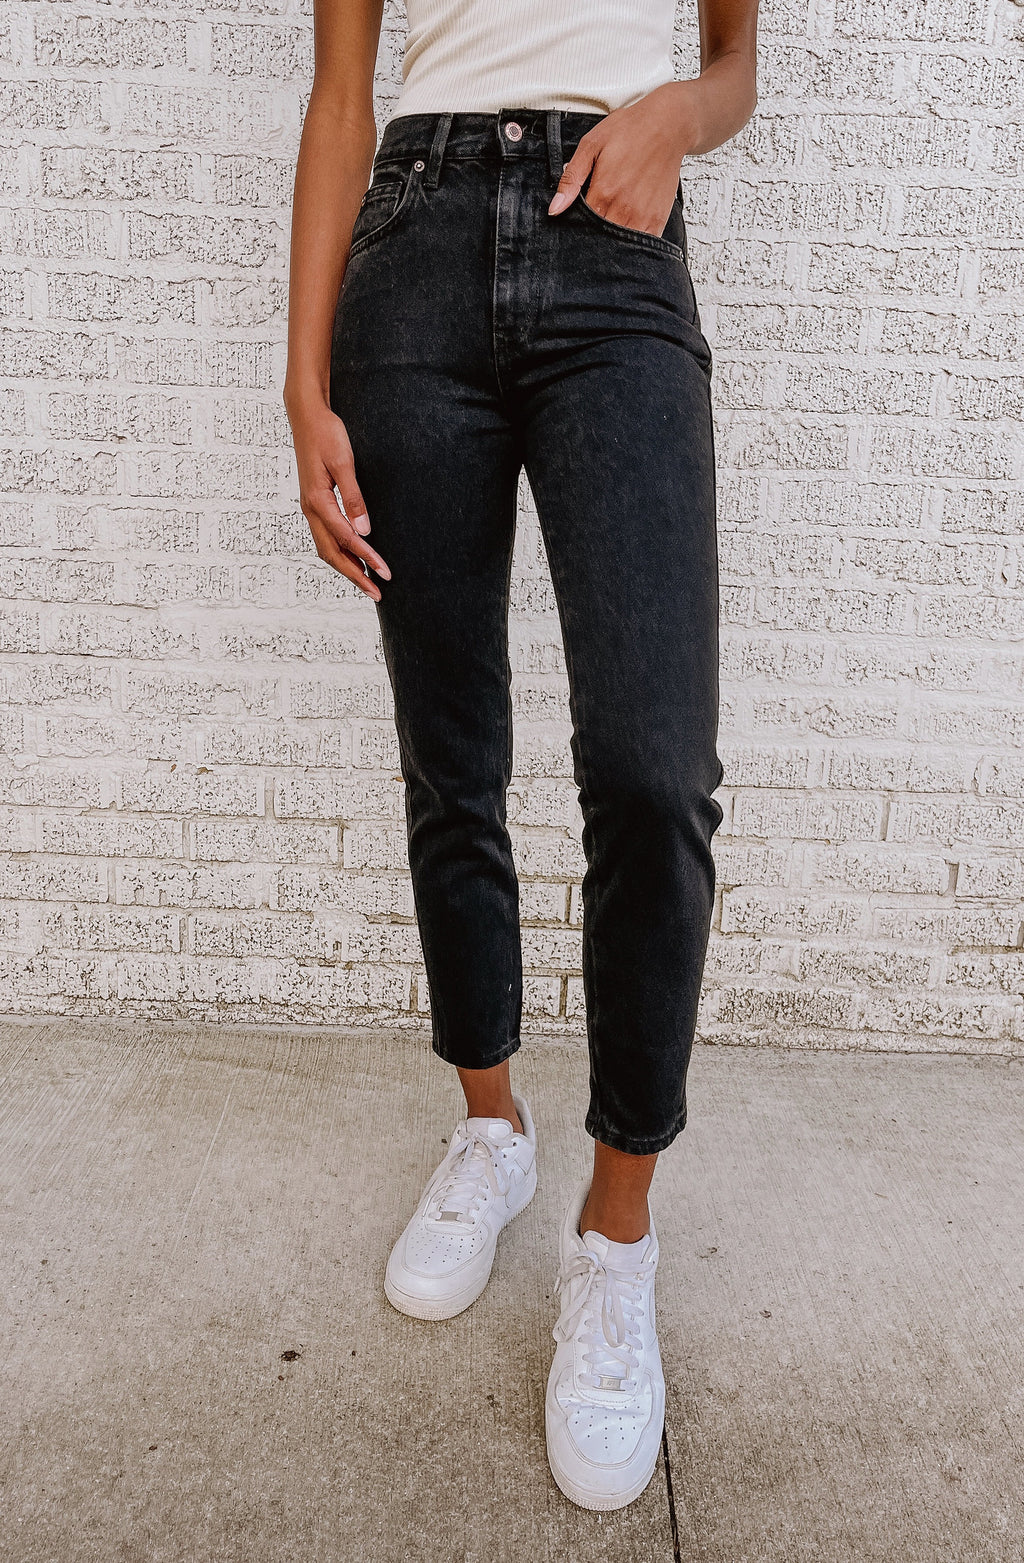 FREE PEOPLE STOVEPIPE JEAN